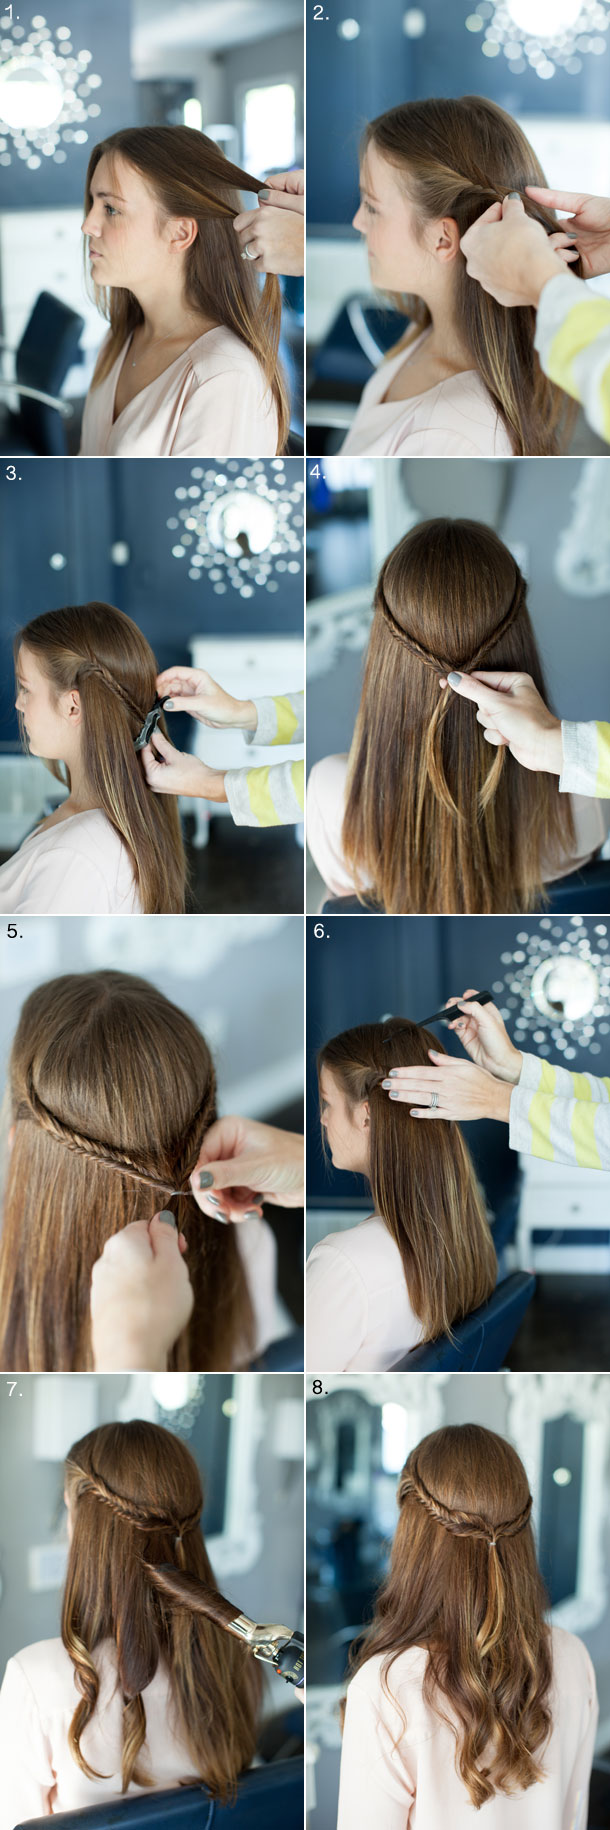 HD wallpapers hairstyle images step by step